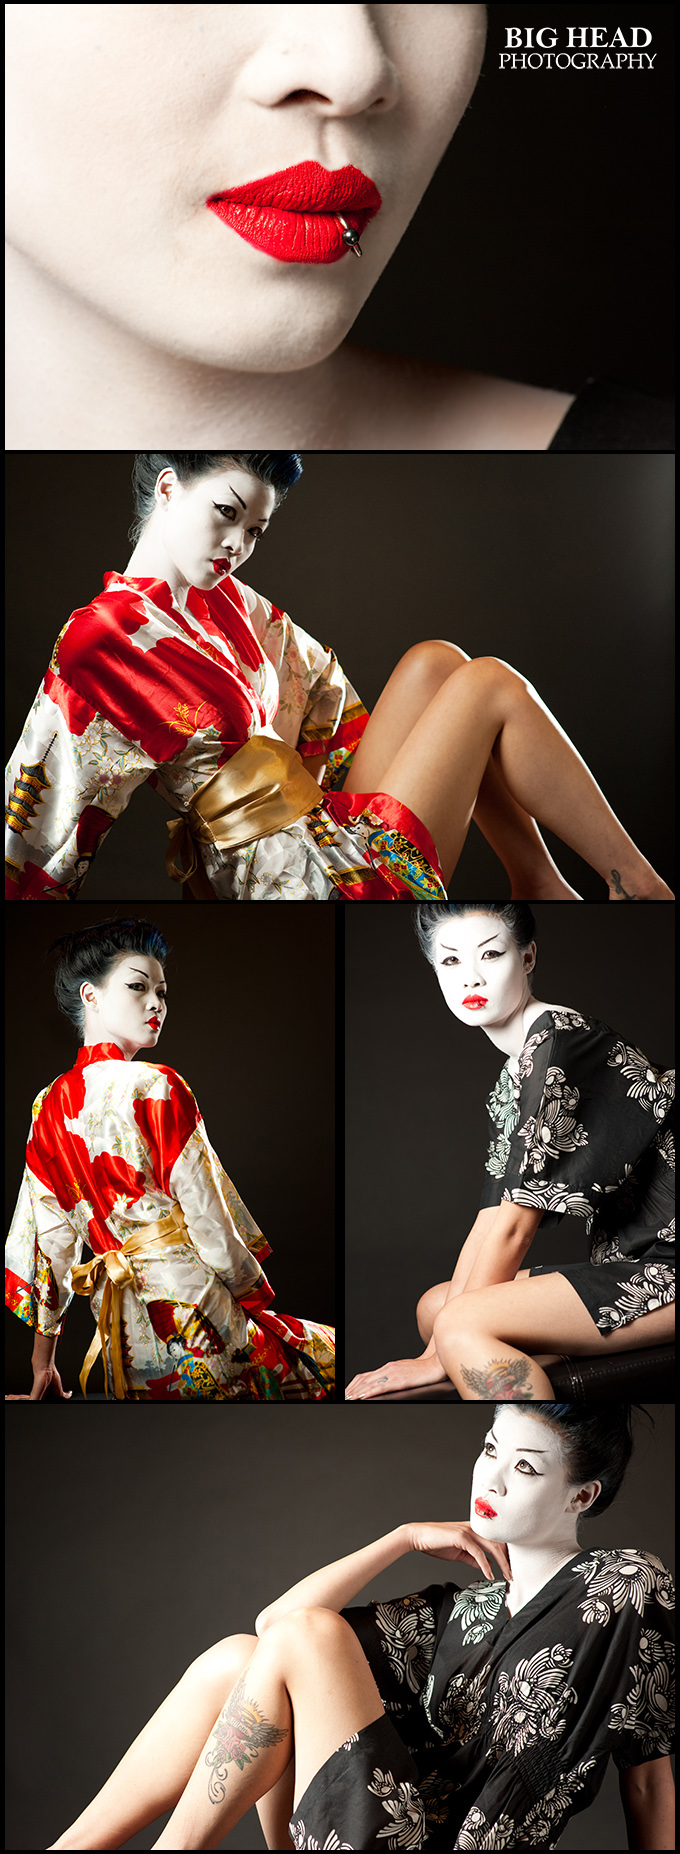 Toronto Nov 11, 2010 Big Head Photography Modern day Geisha